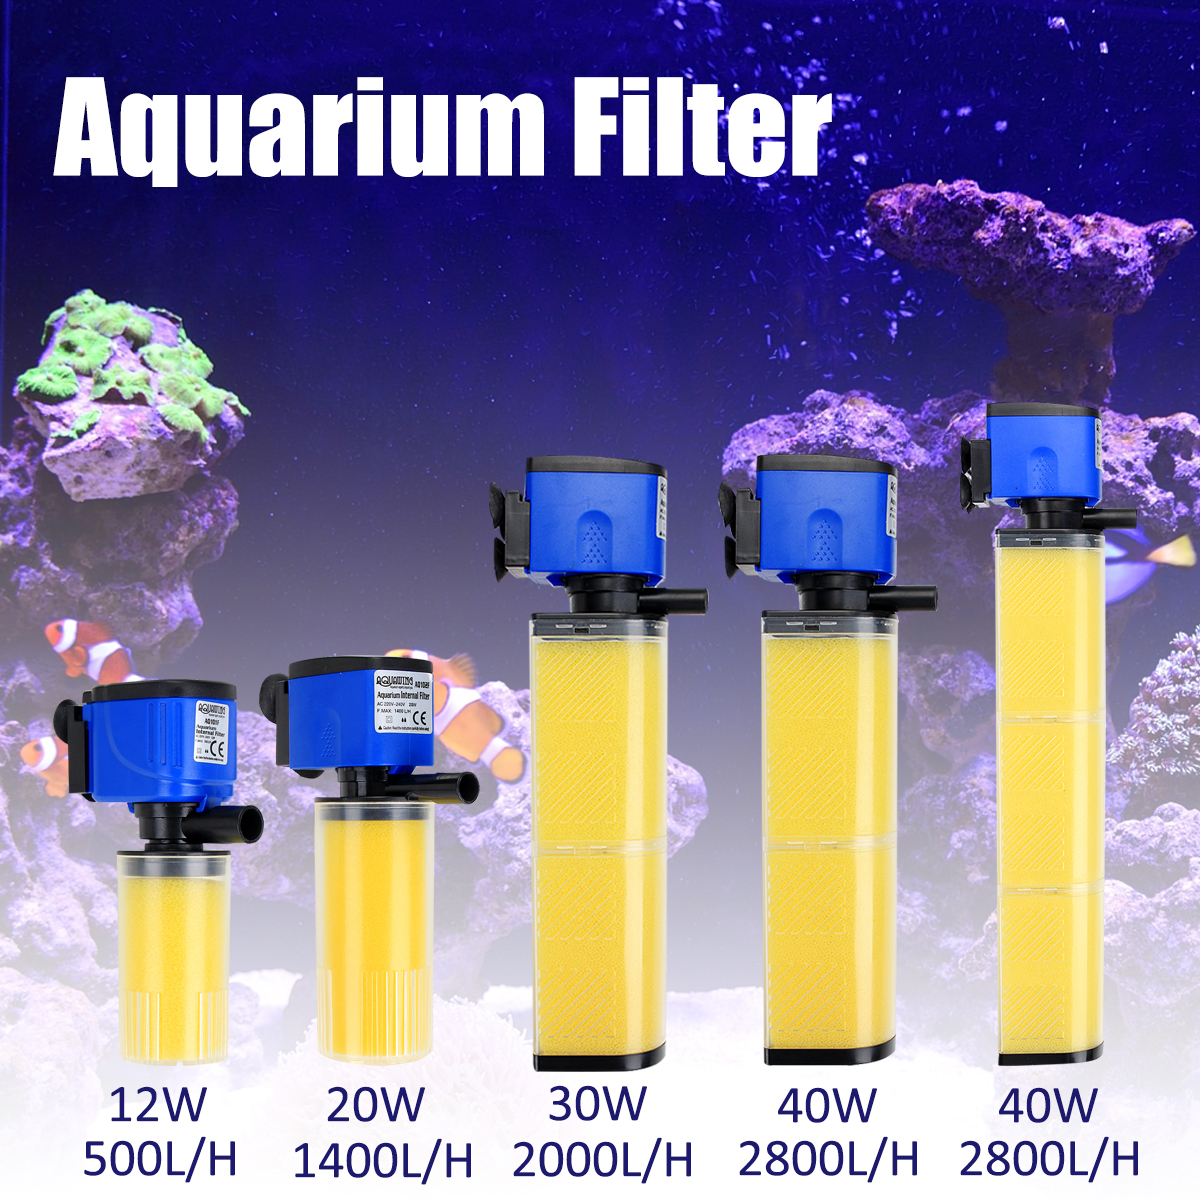 Submersible Internal Oxygen Submersible Filter Aquarium Fish Tank Water Pumps 12W/20W/30W/40W